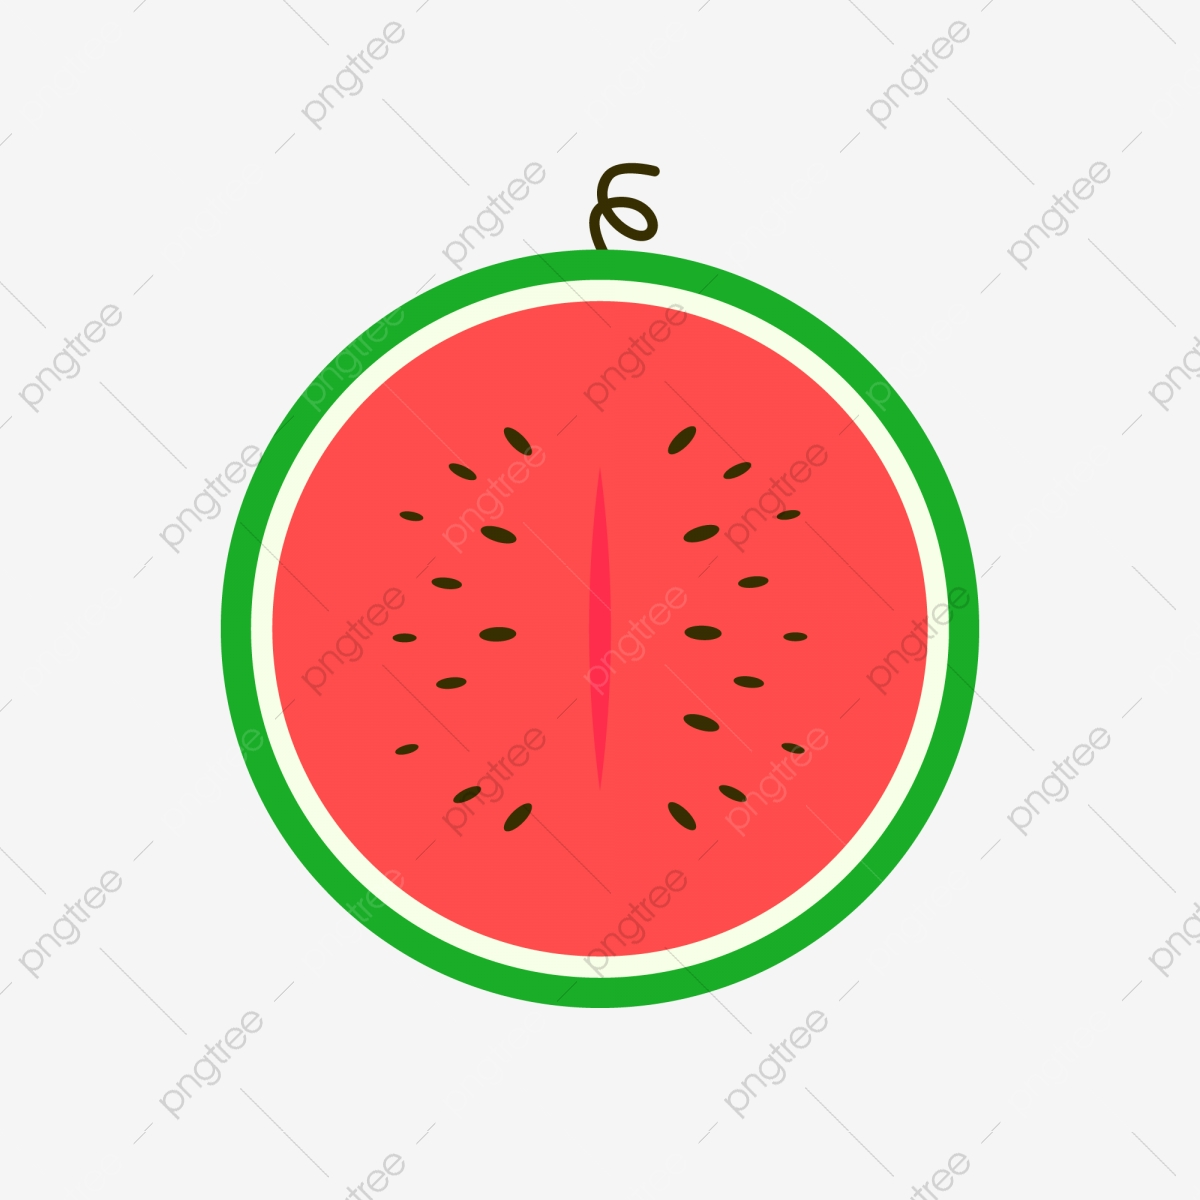 Watermelon clipart half eaten. Red cool in summer